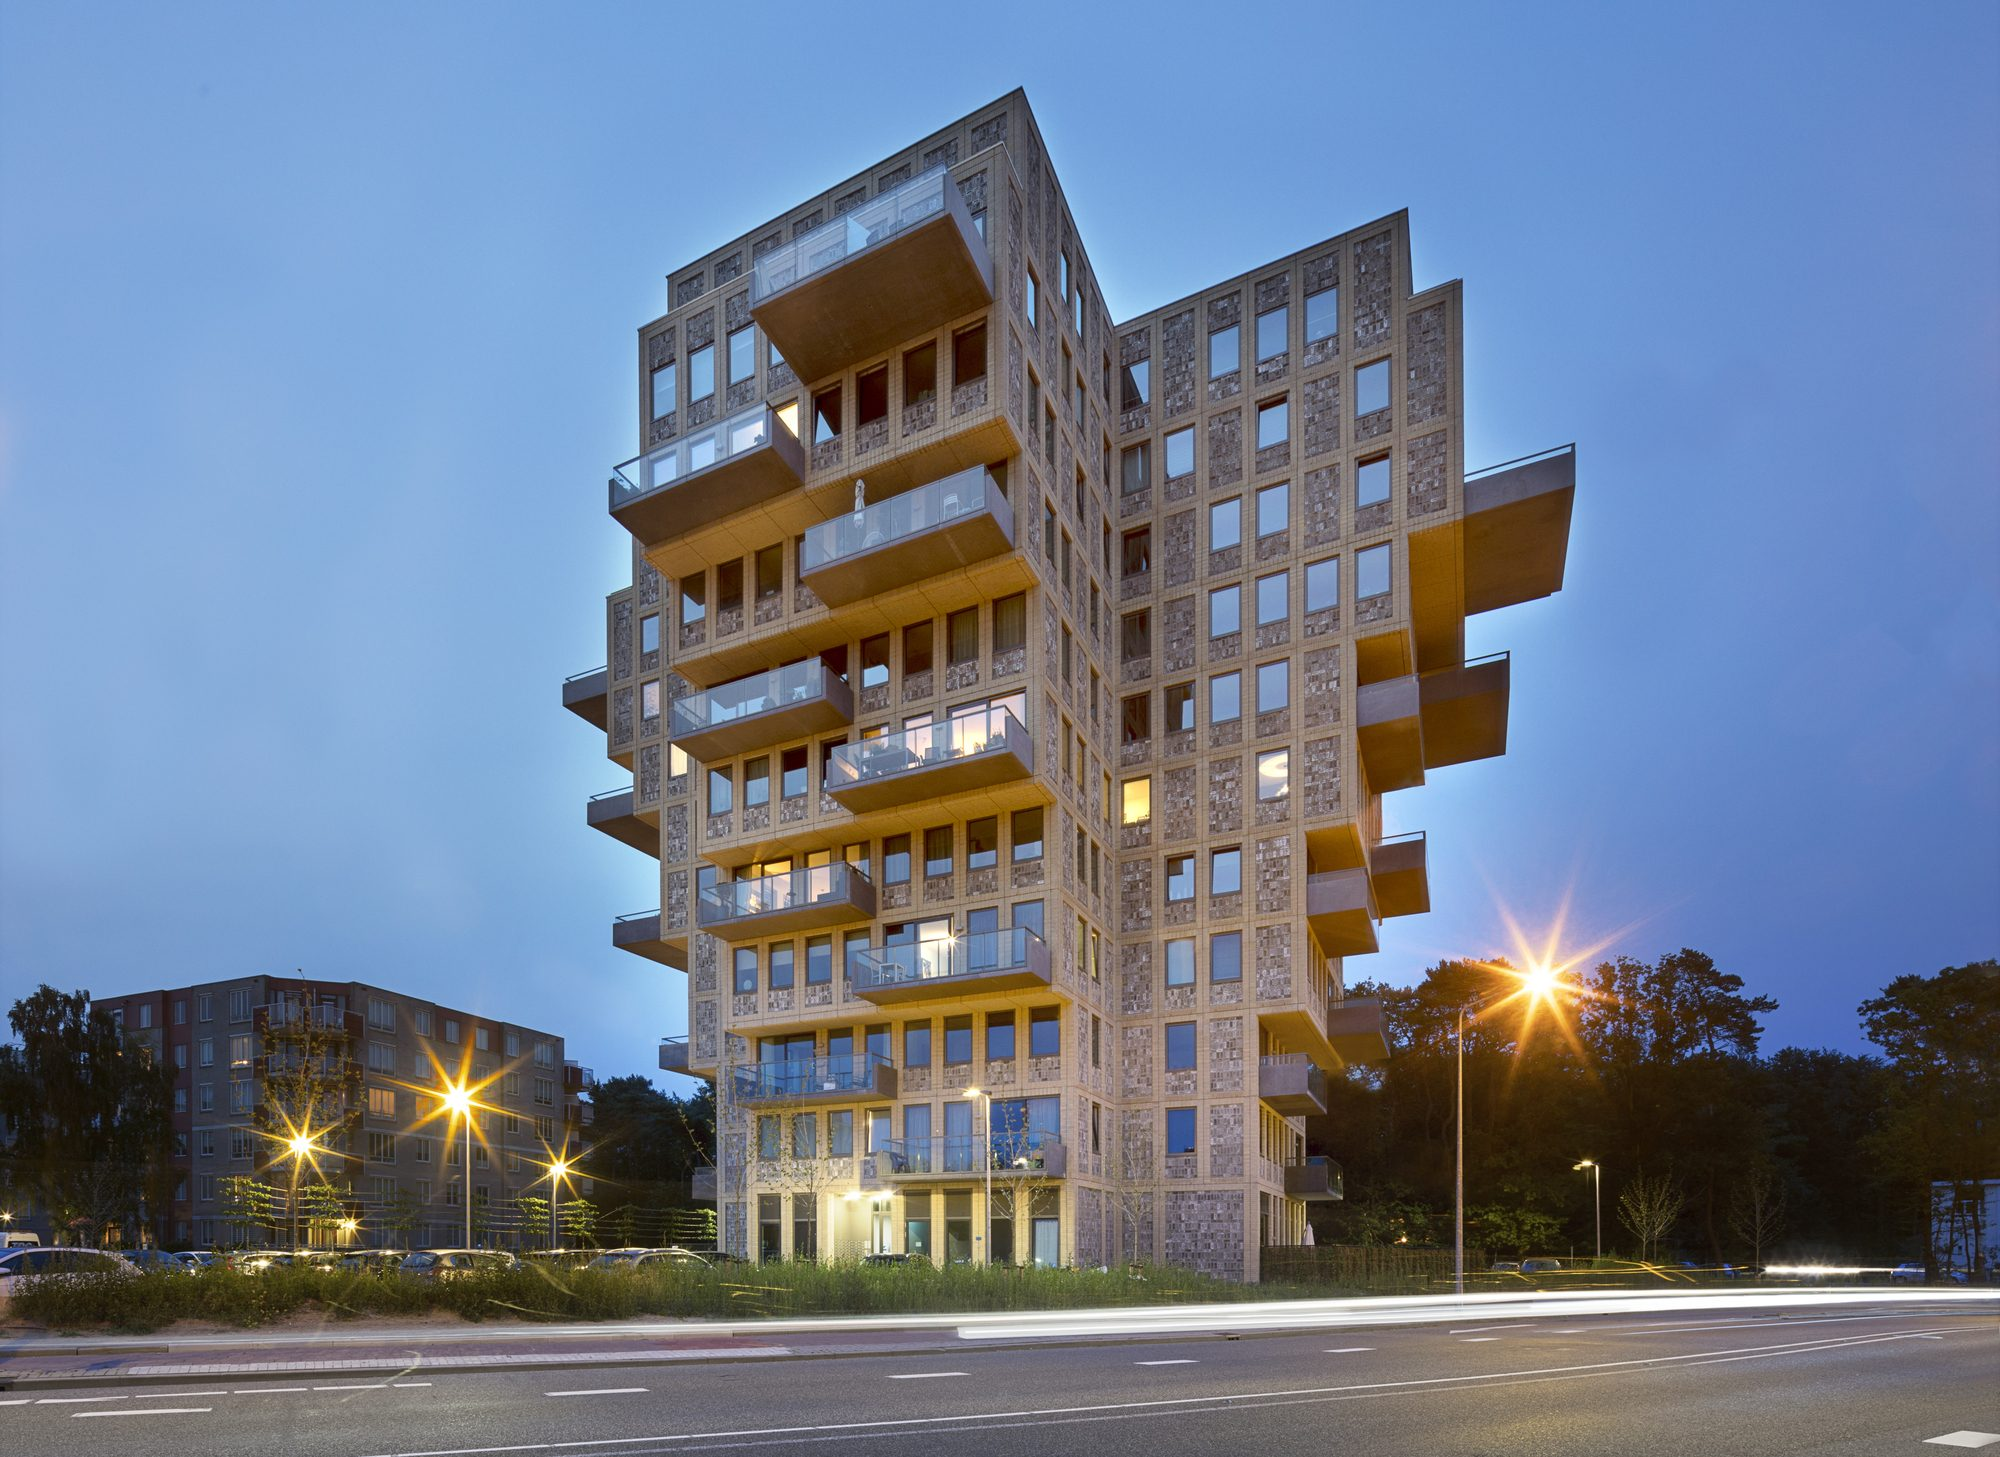 Жилой комплекс Belvedere Tower в Нидерландах от бюро René van Zuuk Architects, HQ architecture, HQarch, HQ arch, high quality architecture